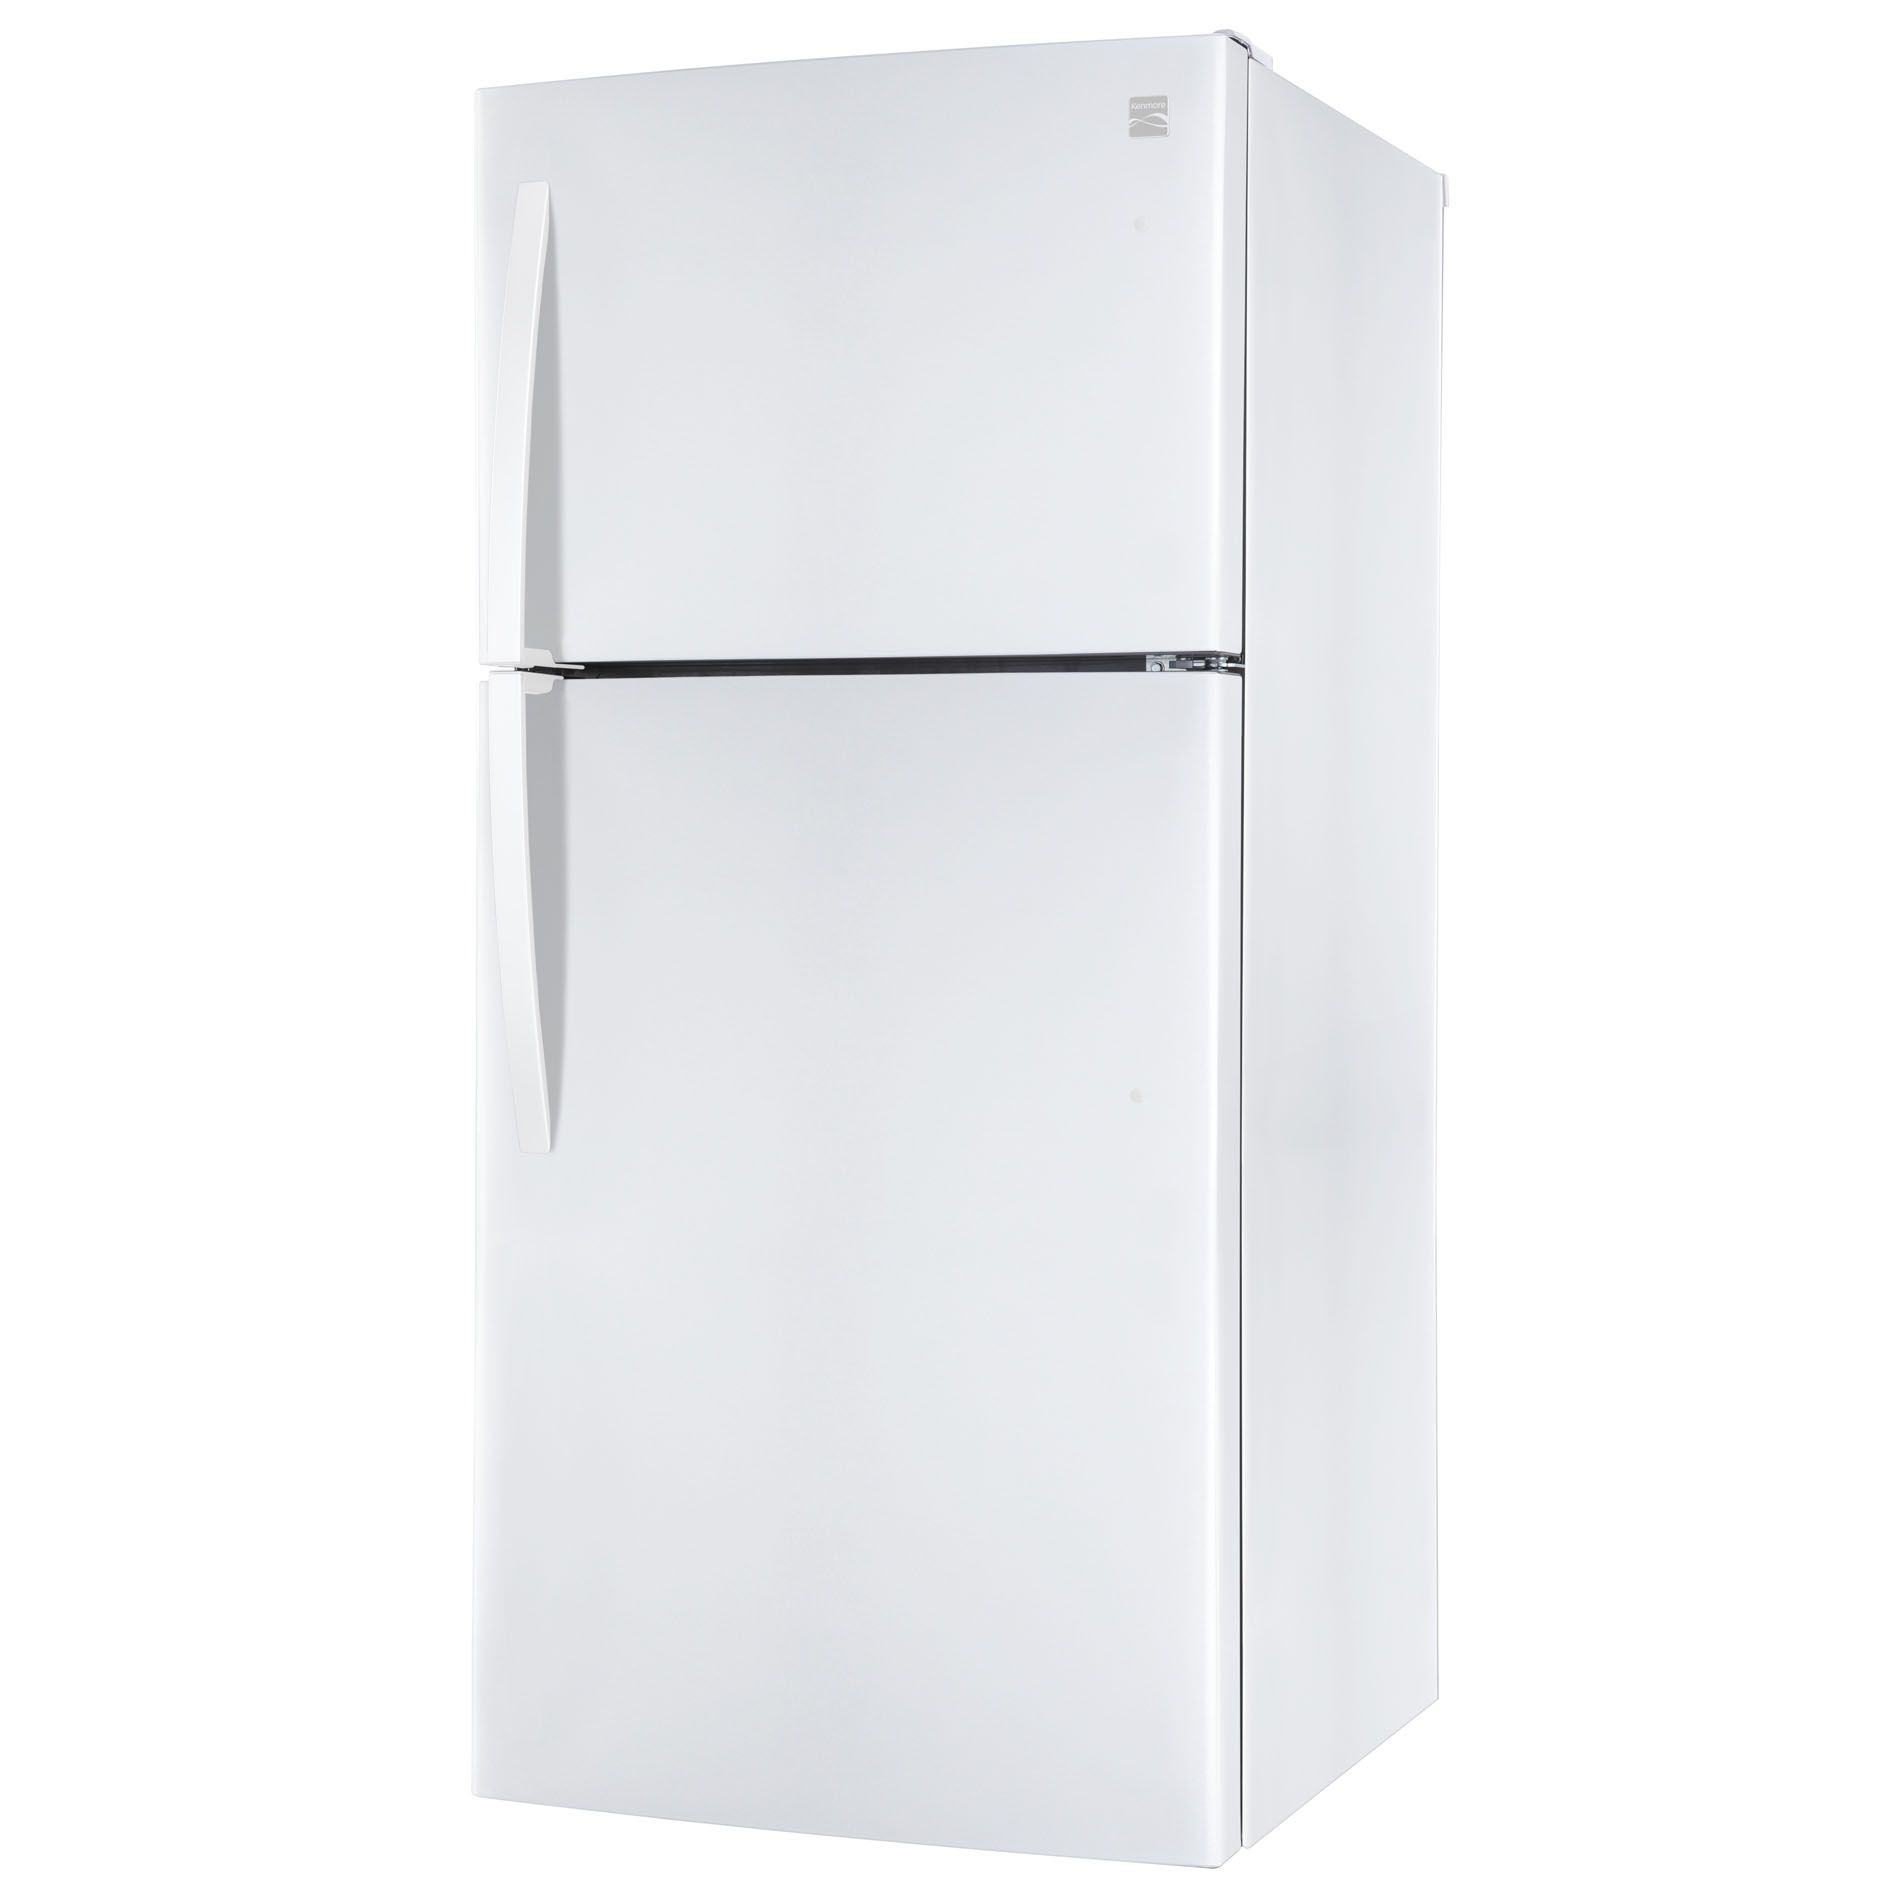 Kenmore 20 cu. ft. White Top-Freezer Refrigerator with Icemaker